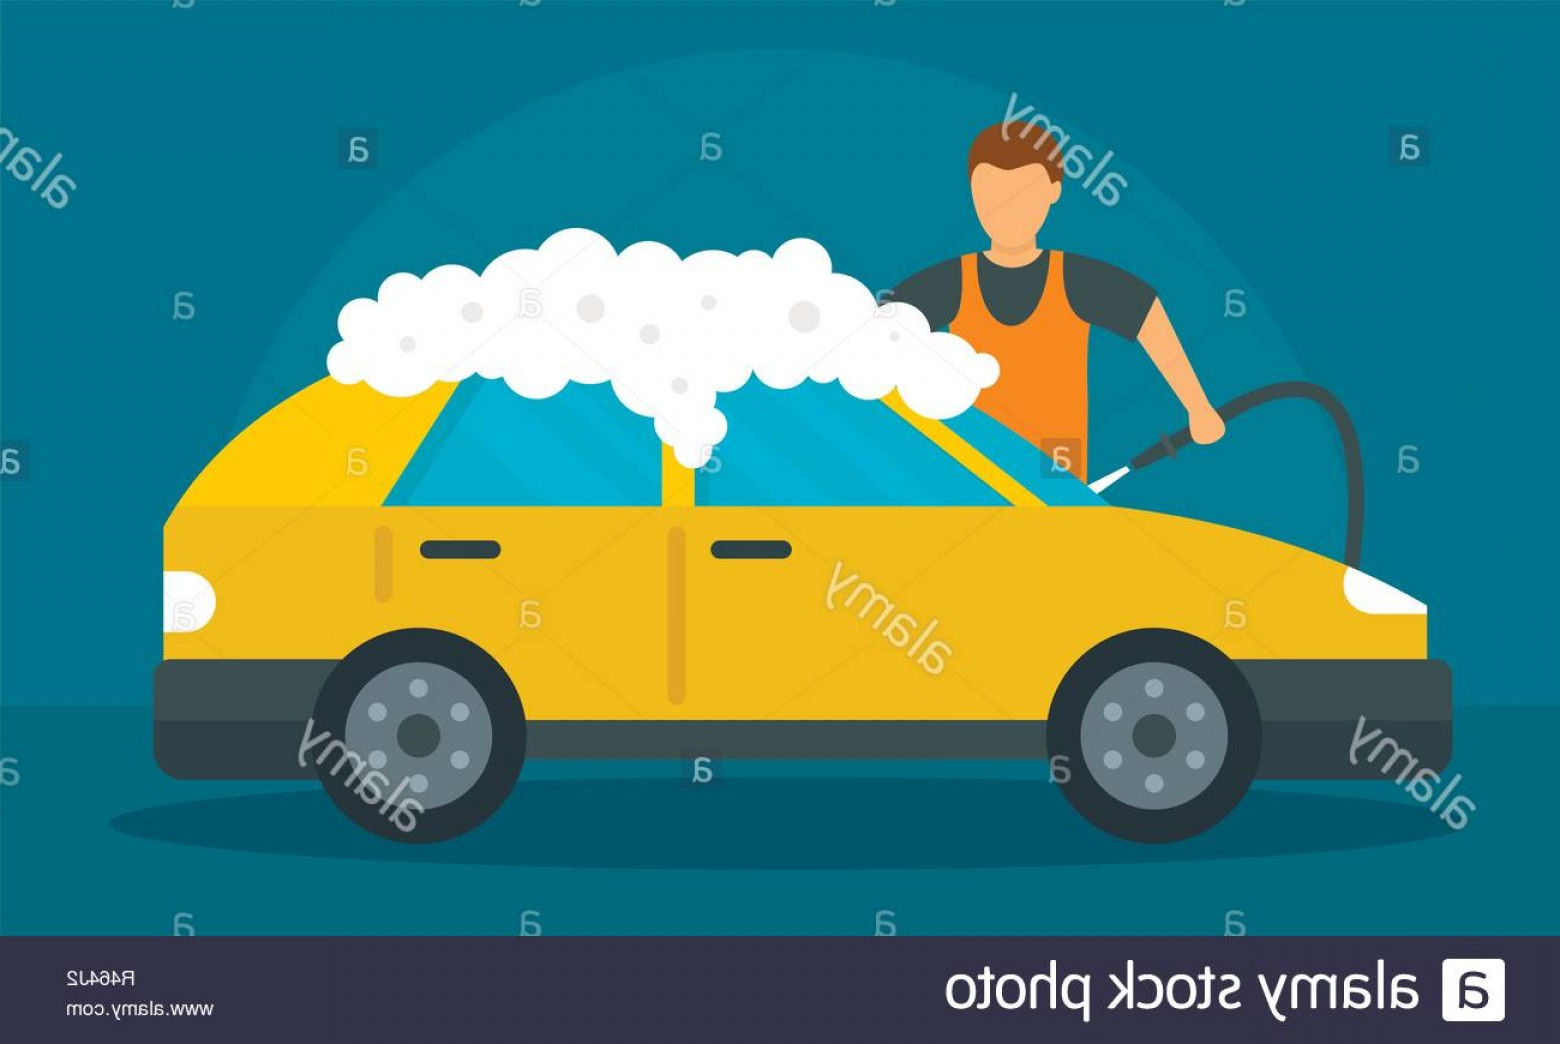 Car Wash Vector Graphics: Man Foam Car Wash Concept Background Flat Illustration Of Man Foam Car Wash Vector Concept Background For Web Design Image